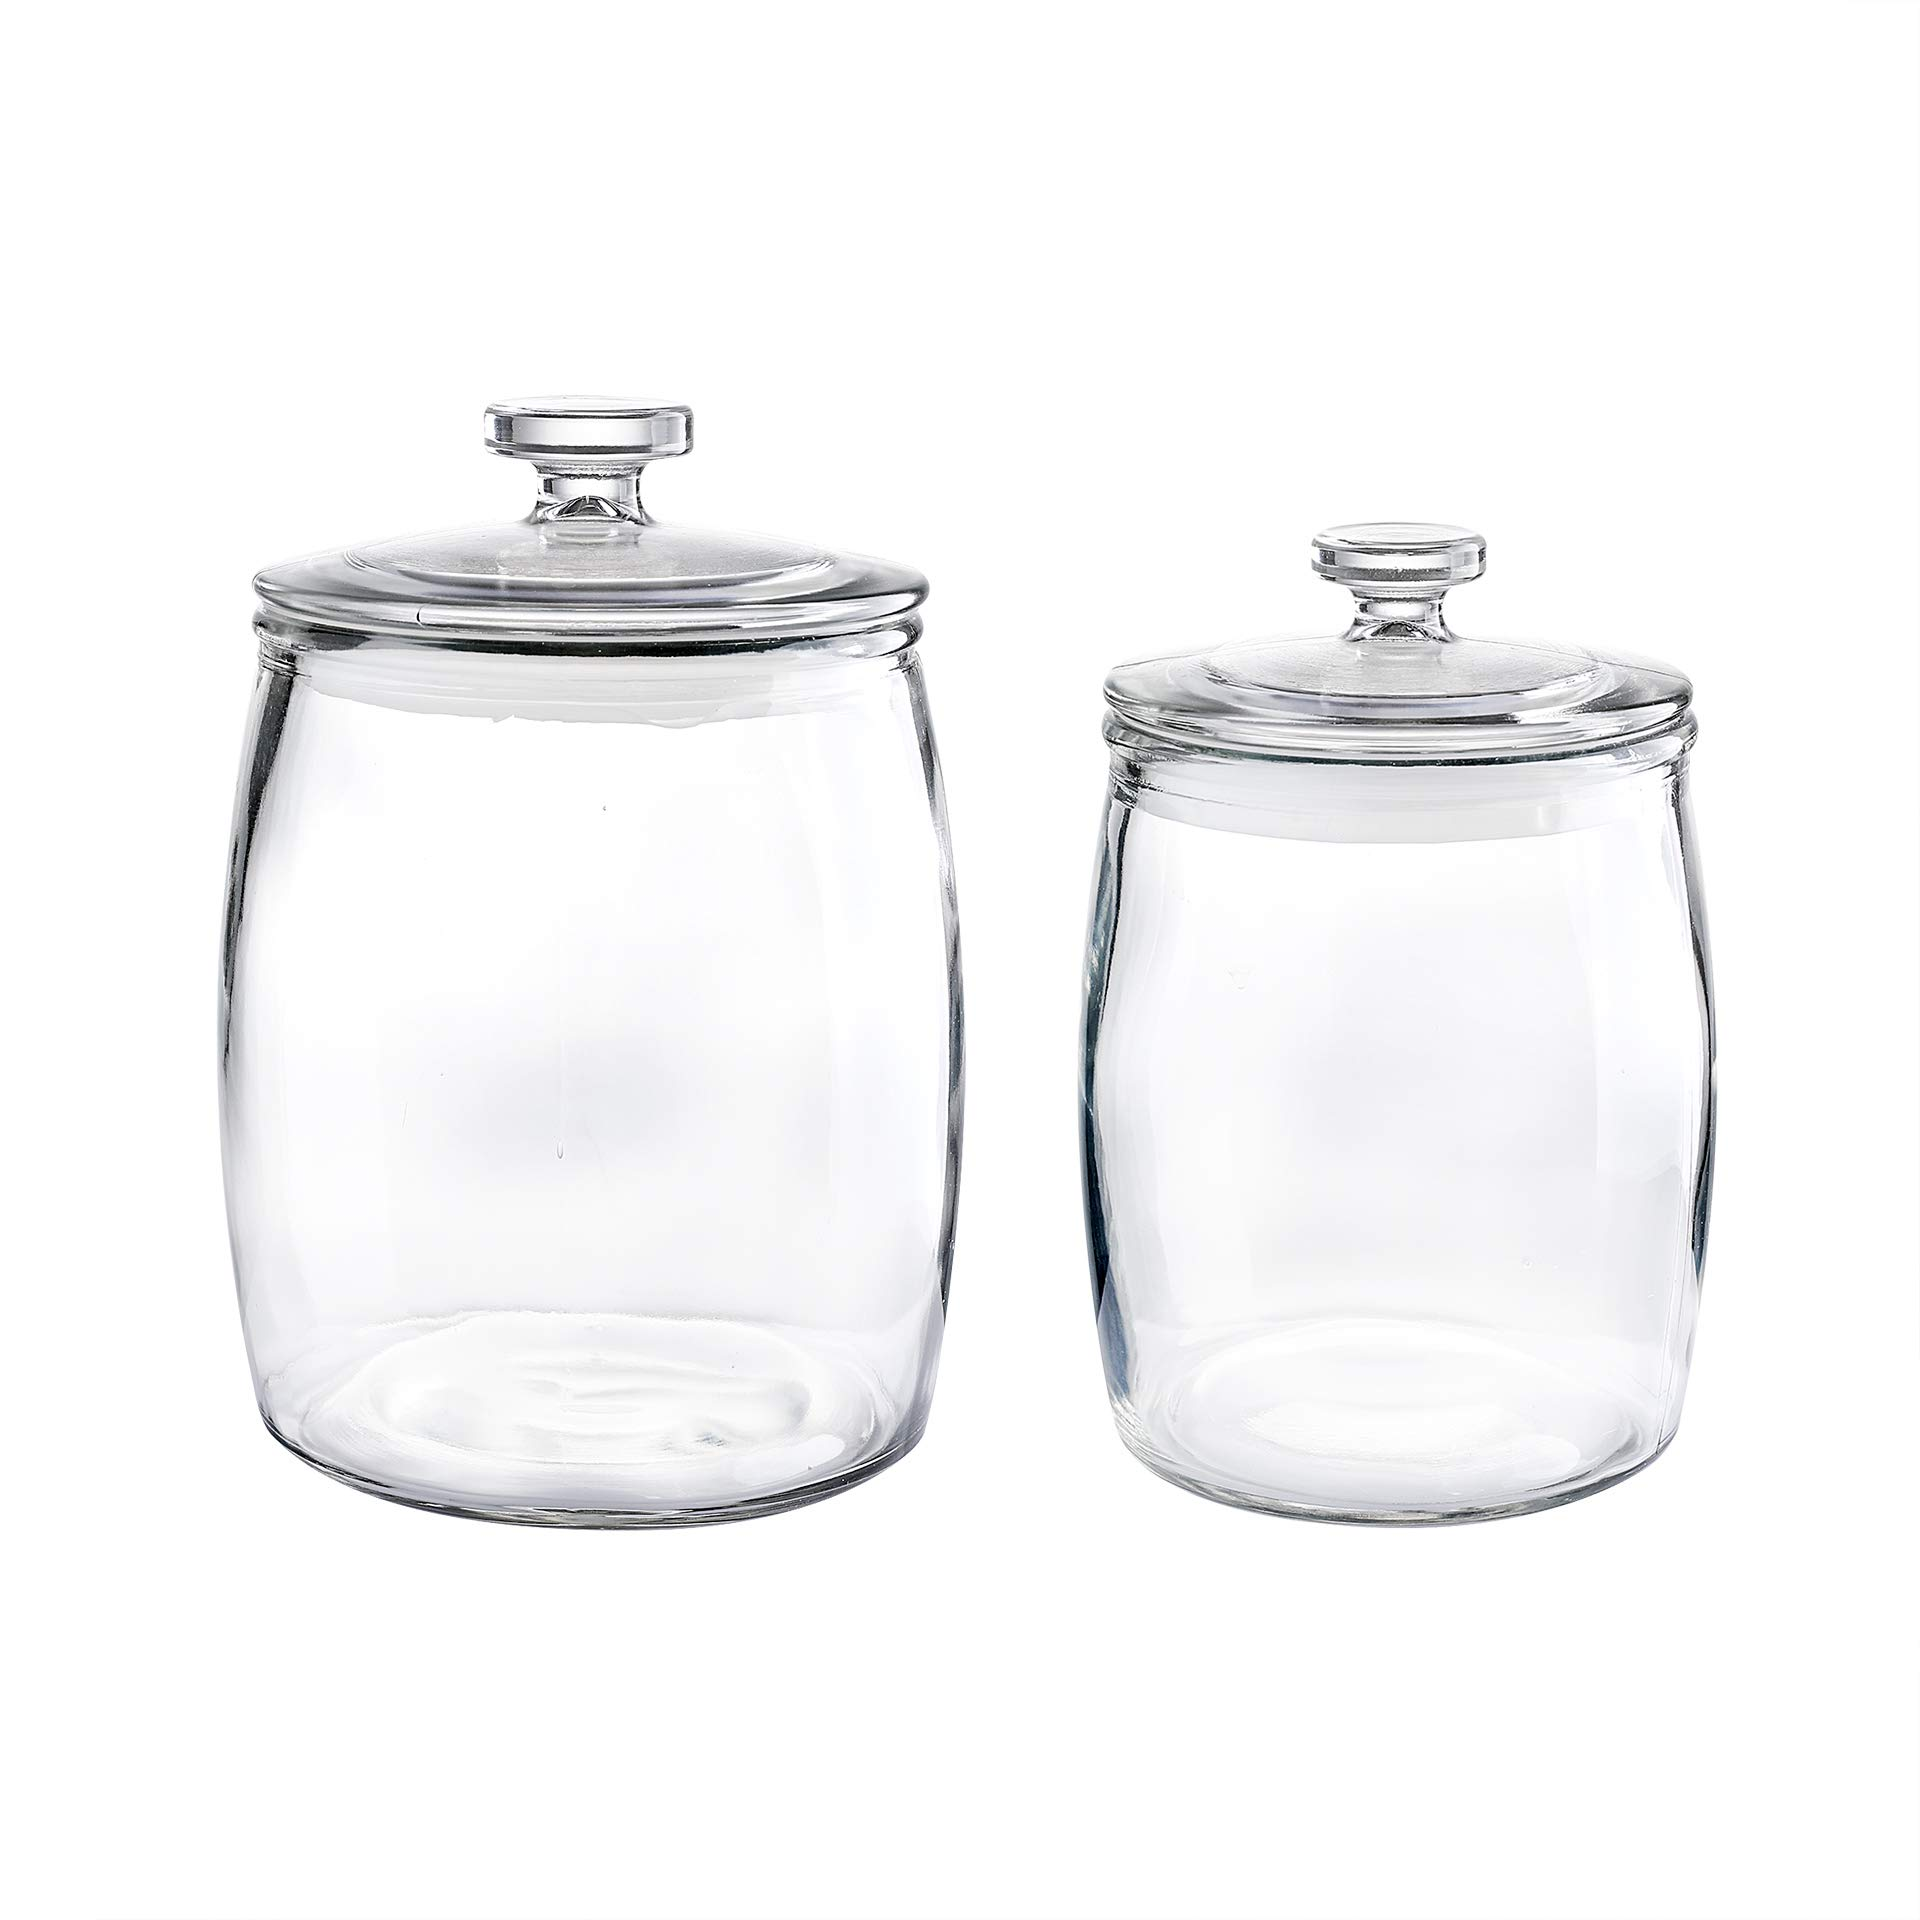 1.1 Gal and 0.6 Gal Glass Apothecary Jar 7.3X10.2 Inch and 6.1X8.5 Inch Canister Set of 2